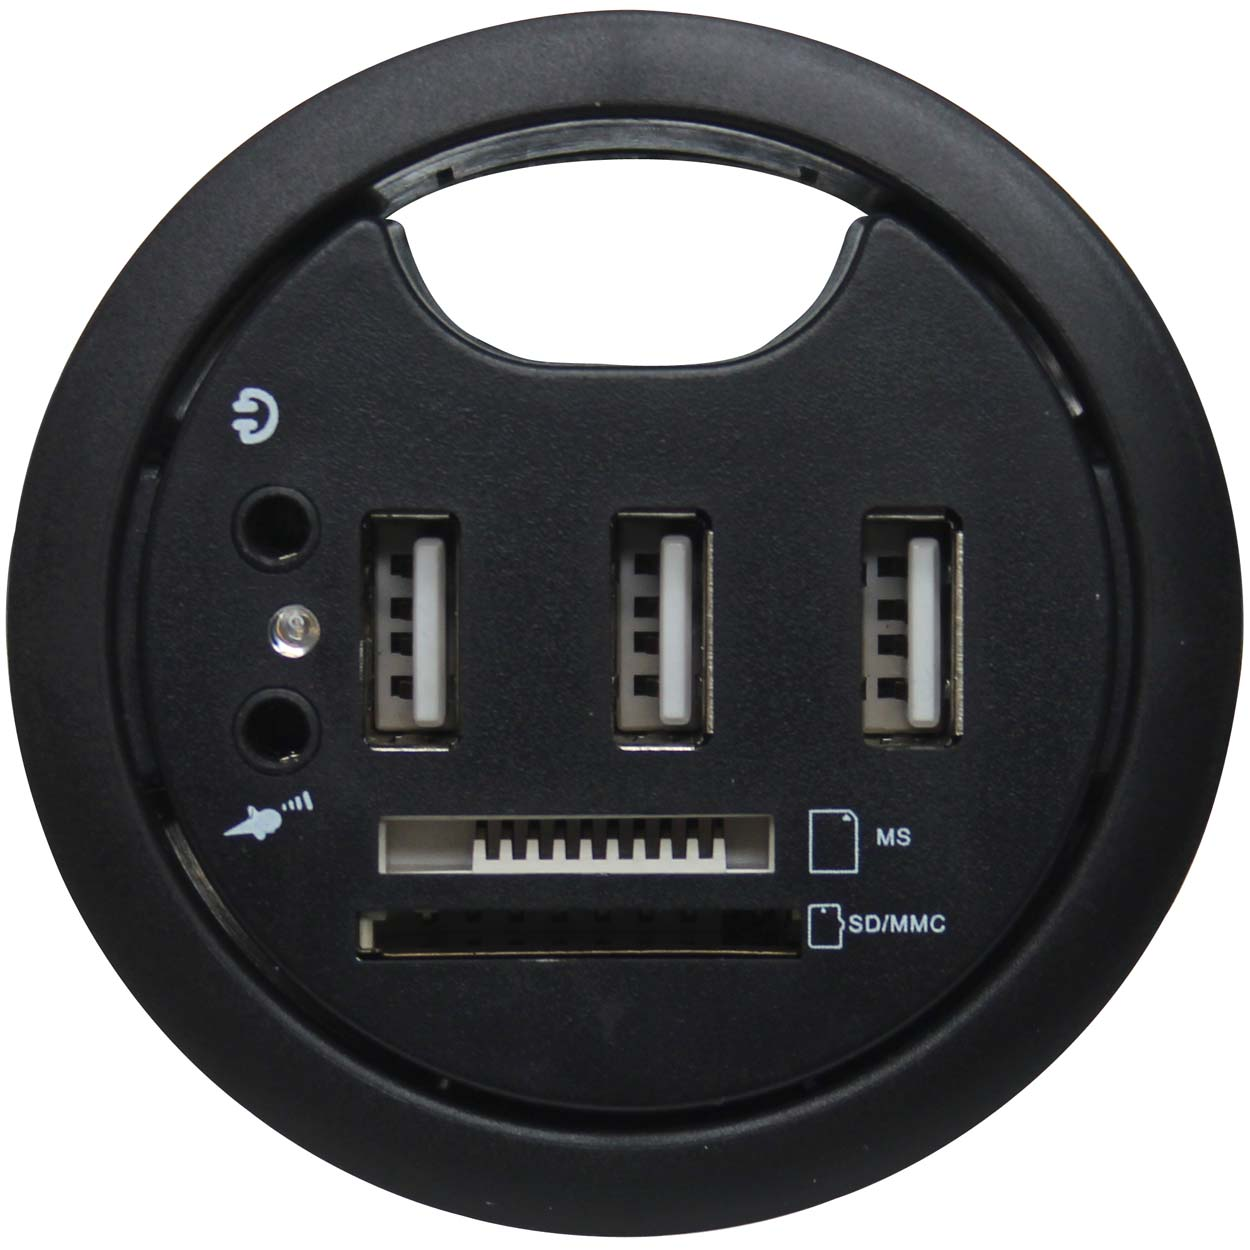 Usb Desk Grommet With 3 Usb 2 0 Multi Card Reader And